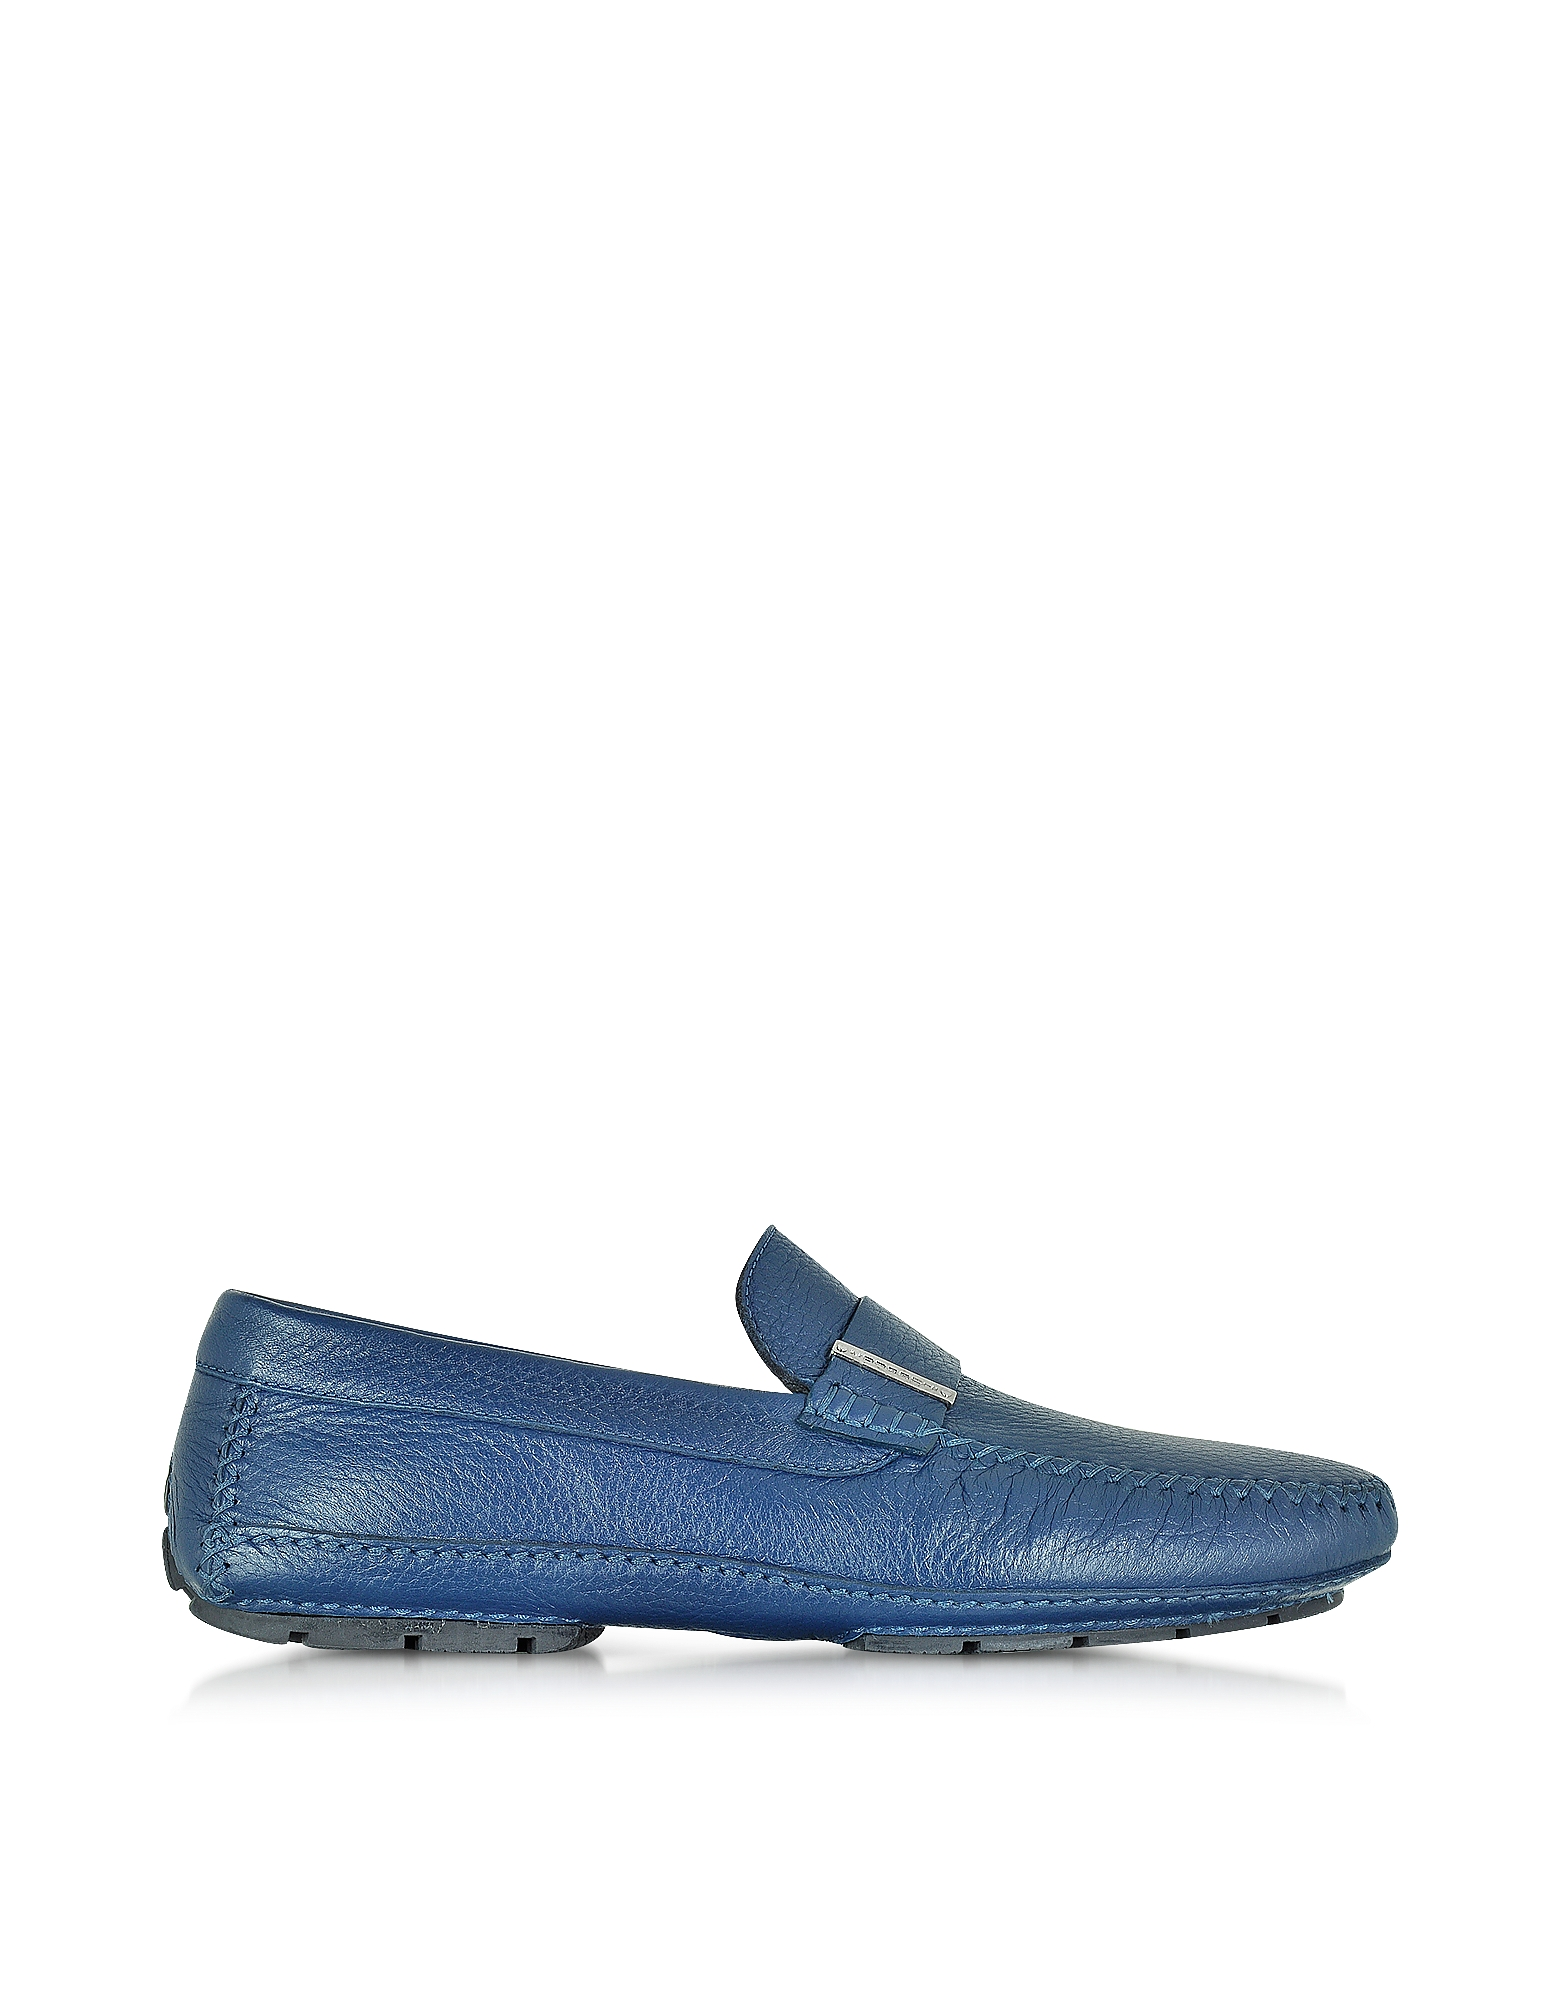 Moreschi Shoes, Miami Blue Deerskin Driver Shoe w/Rubber Sole